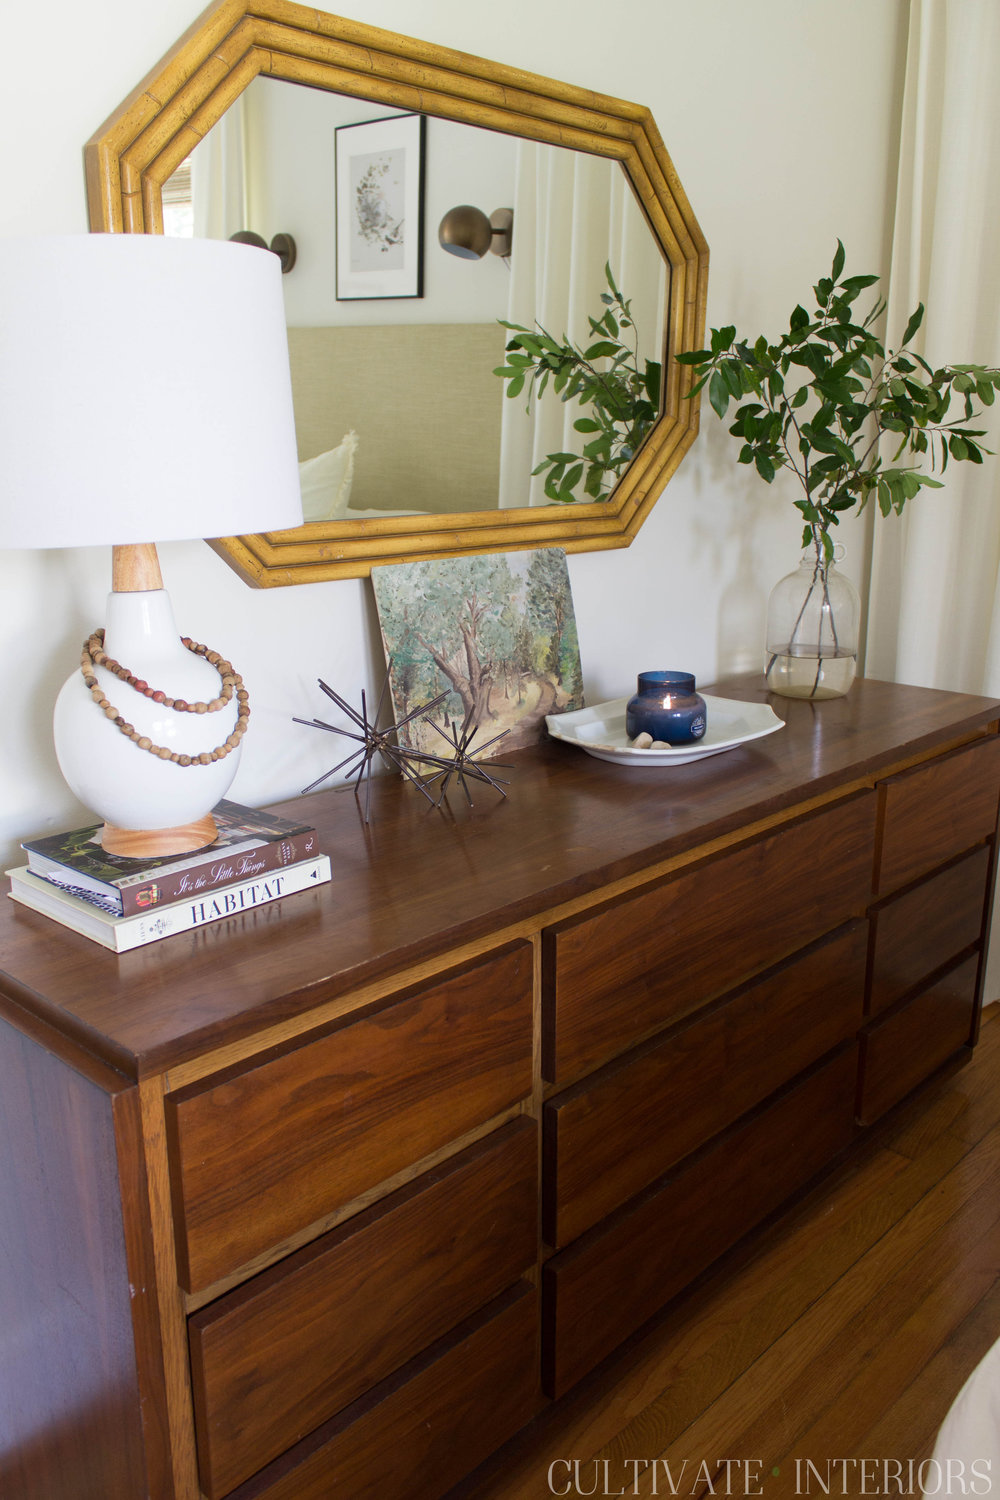 Mid century modern wood dresser with voluspa candle and thrifted, eclectic accessories